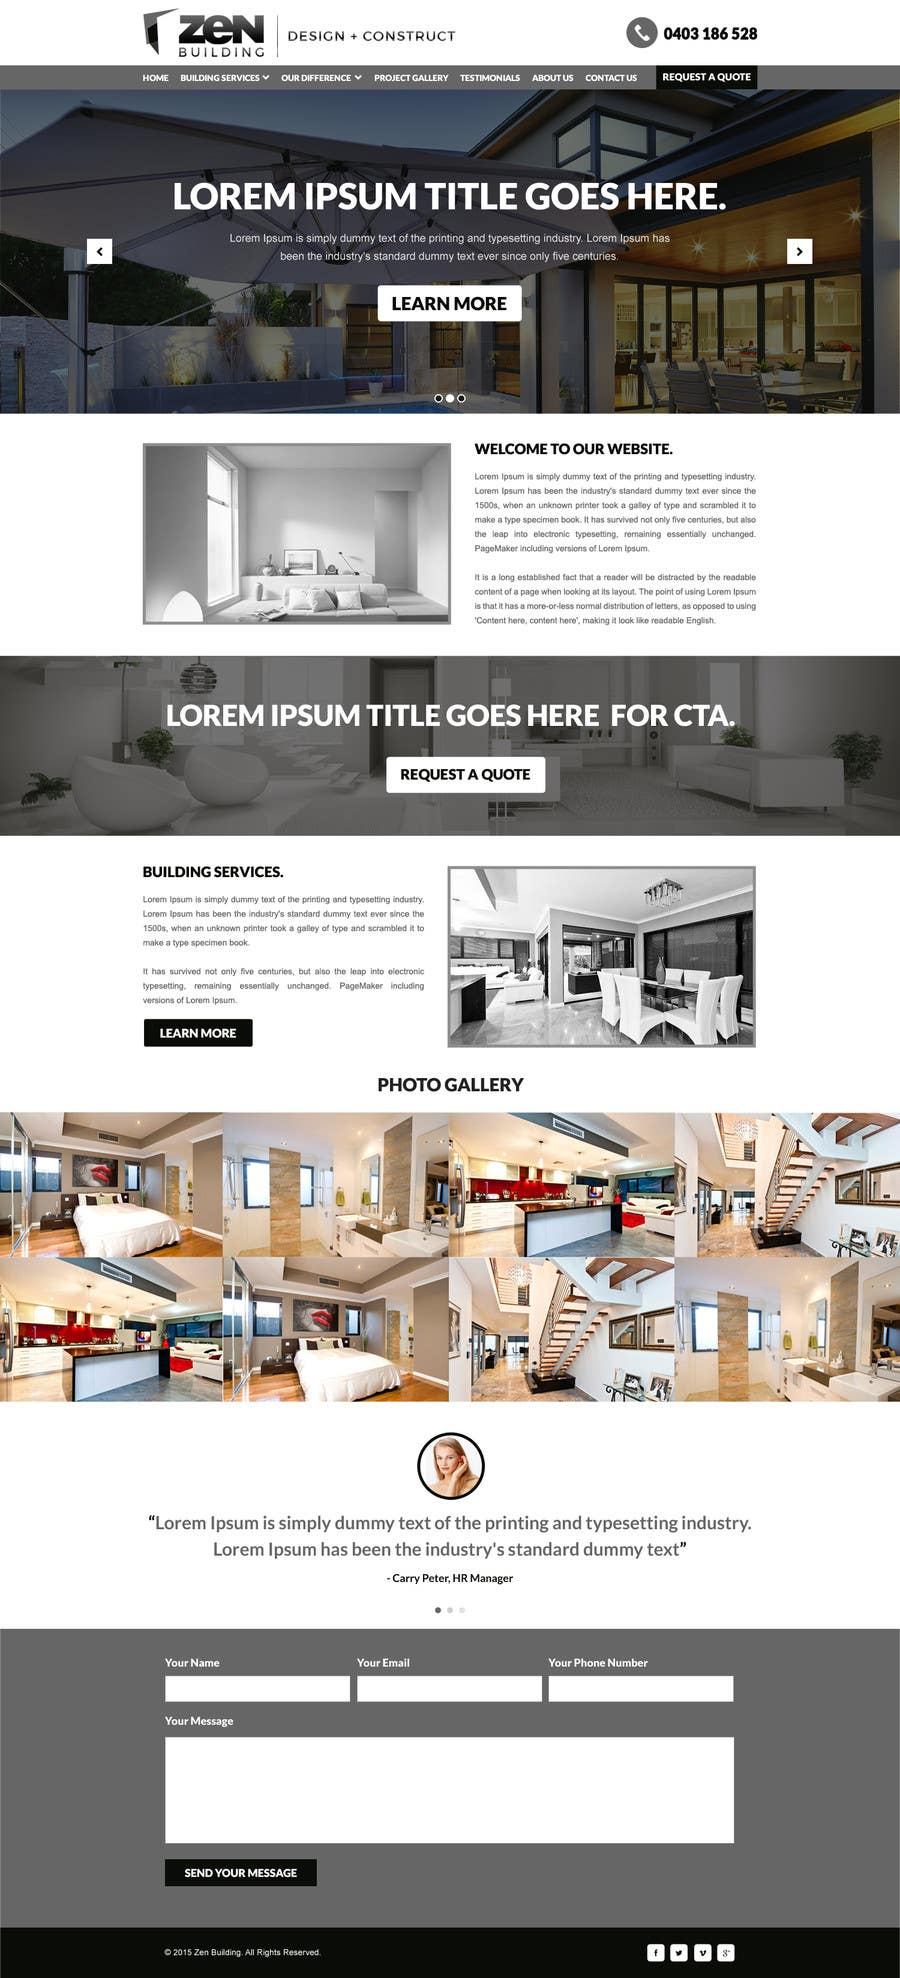 Contest Entry #2 for Design a Website Mockup for Construction Company